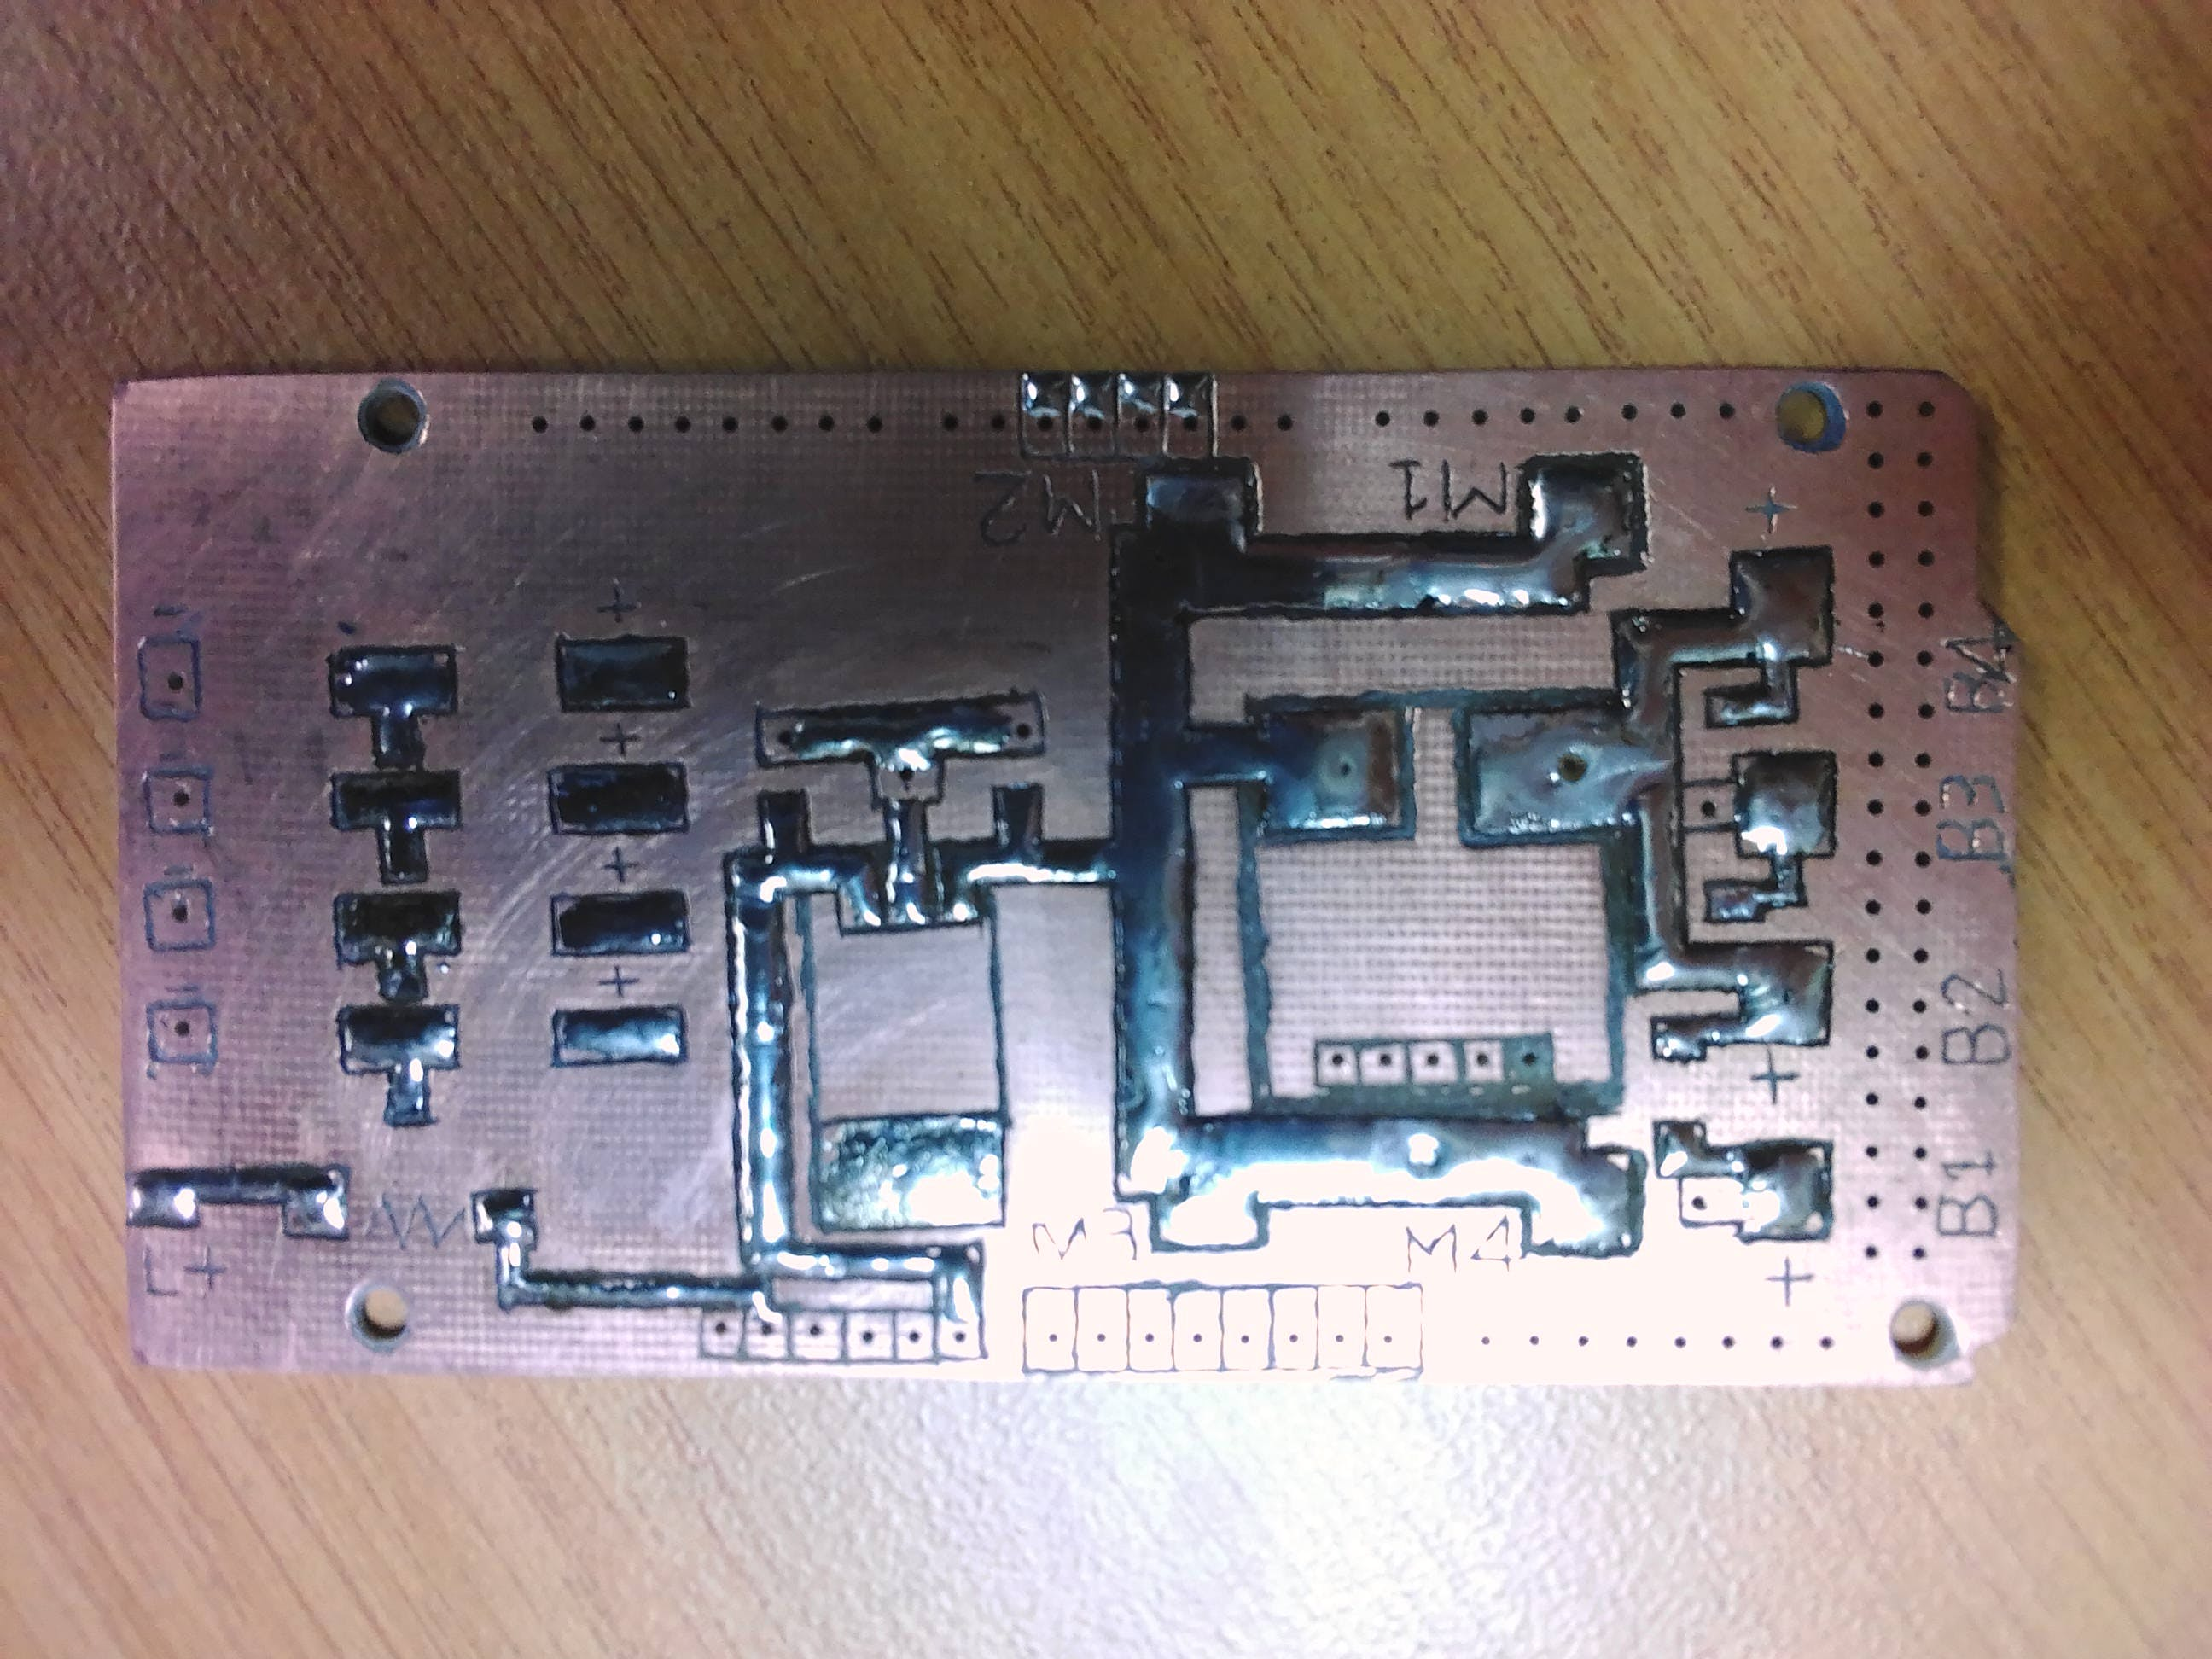 Top side of power distribution board